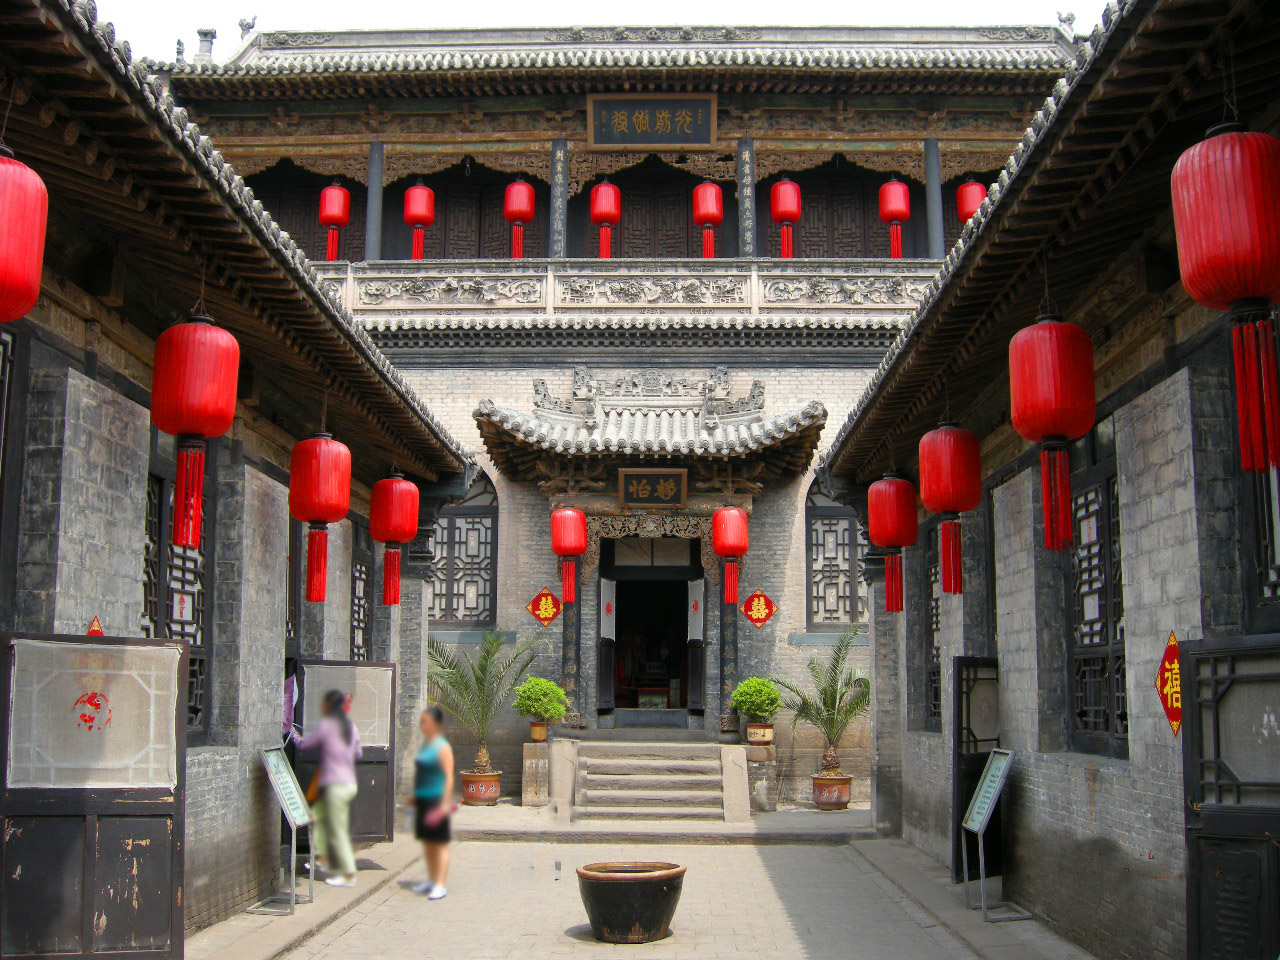 The Qiao Family Courtyard is a masterpiece of traditional civil architecture